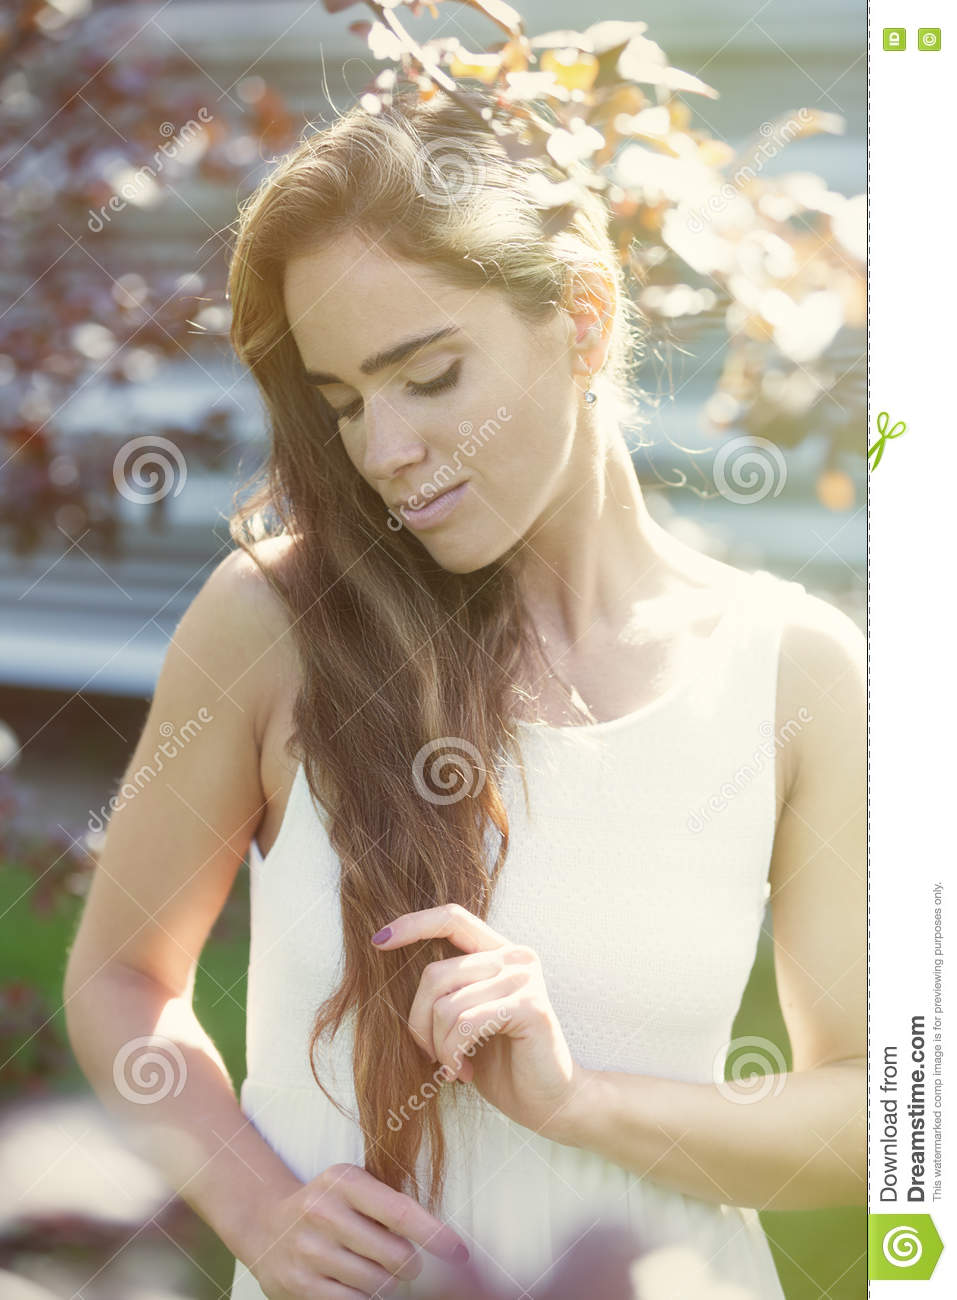 Download Morning in the park stock photo. Image of brown, attractive - 77041832